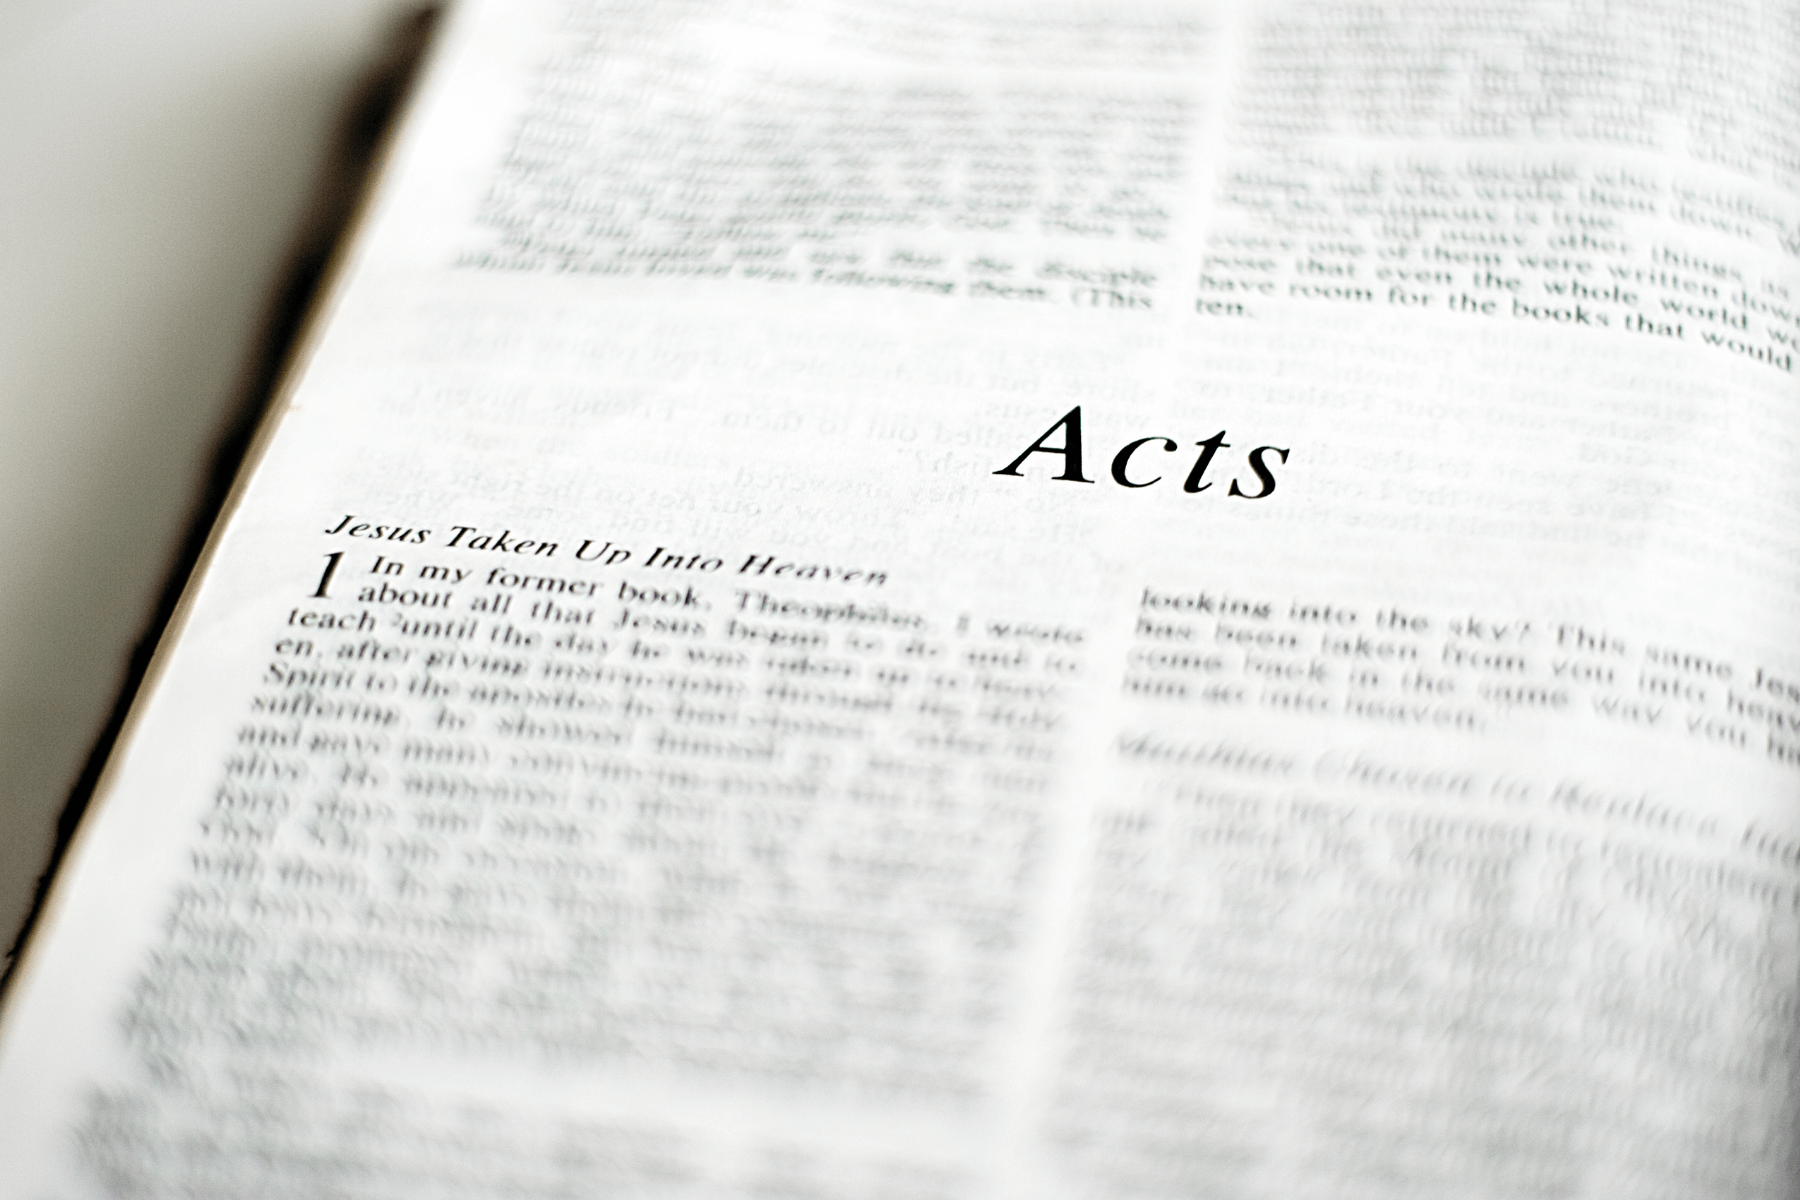 What Can Seniors Learn From the Book of Acts?